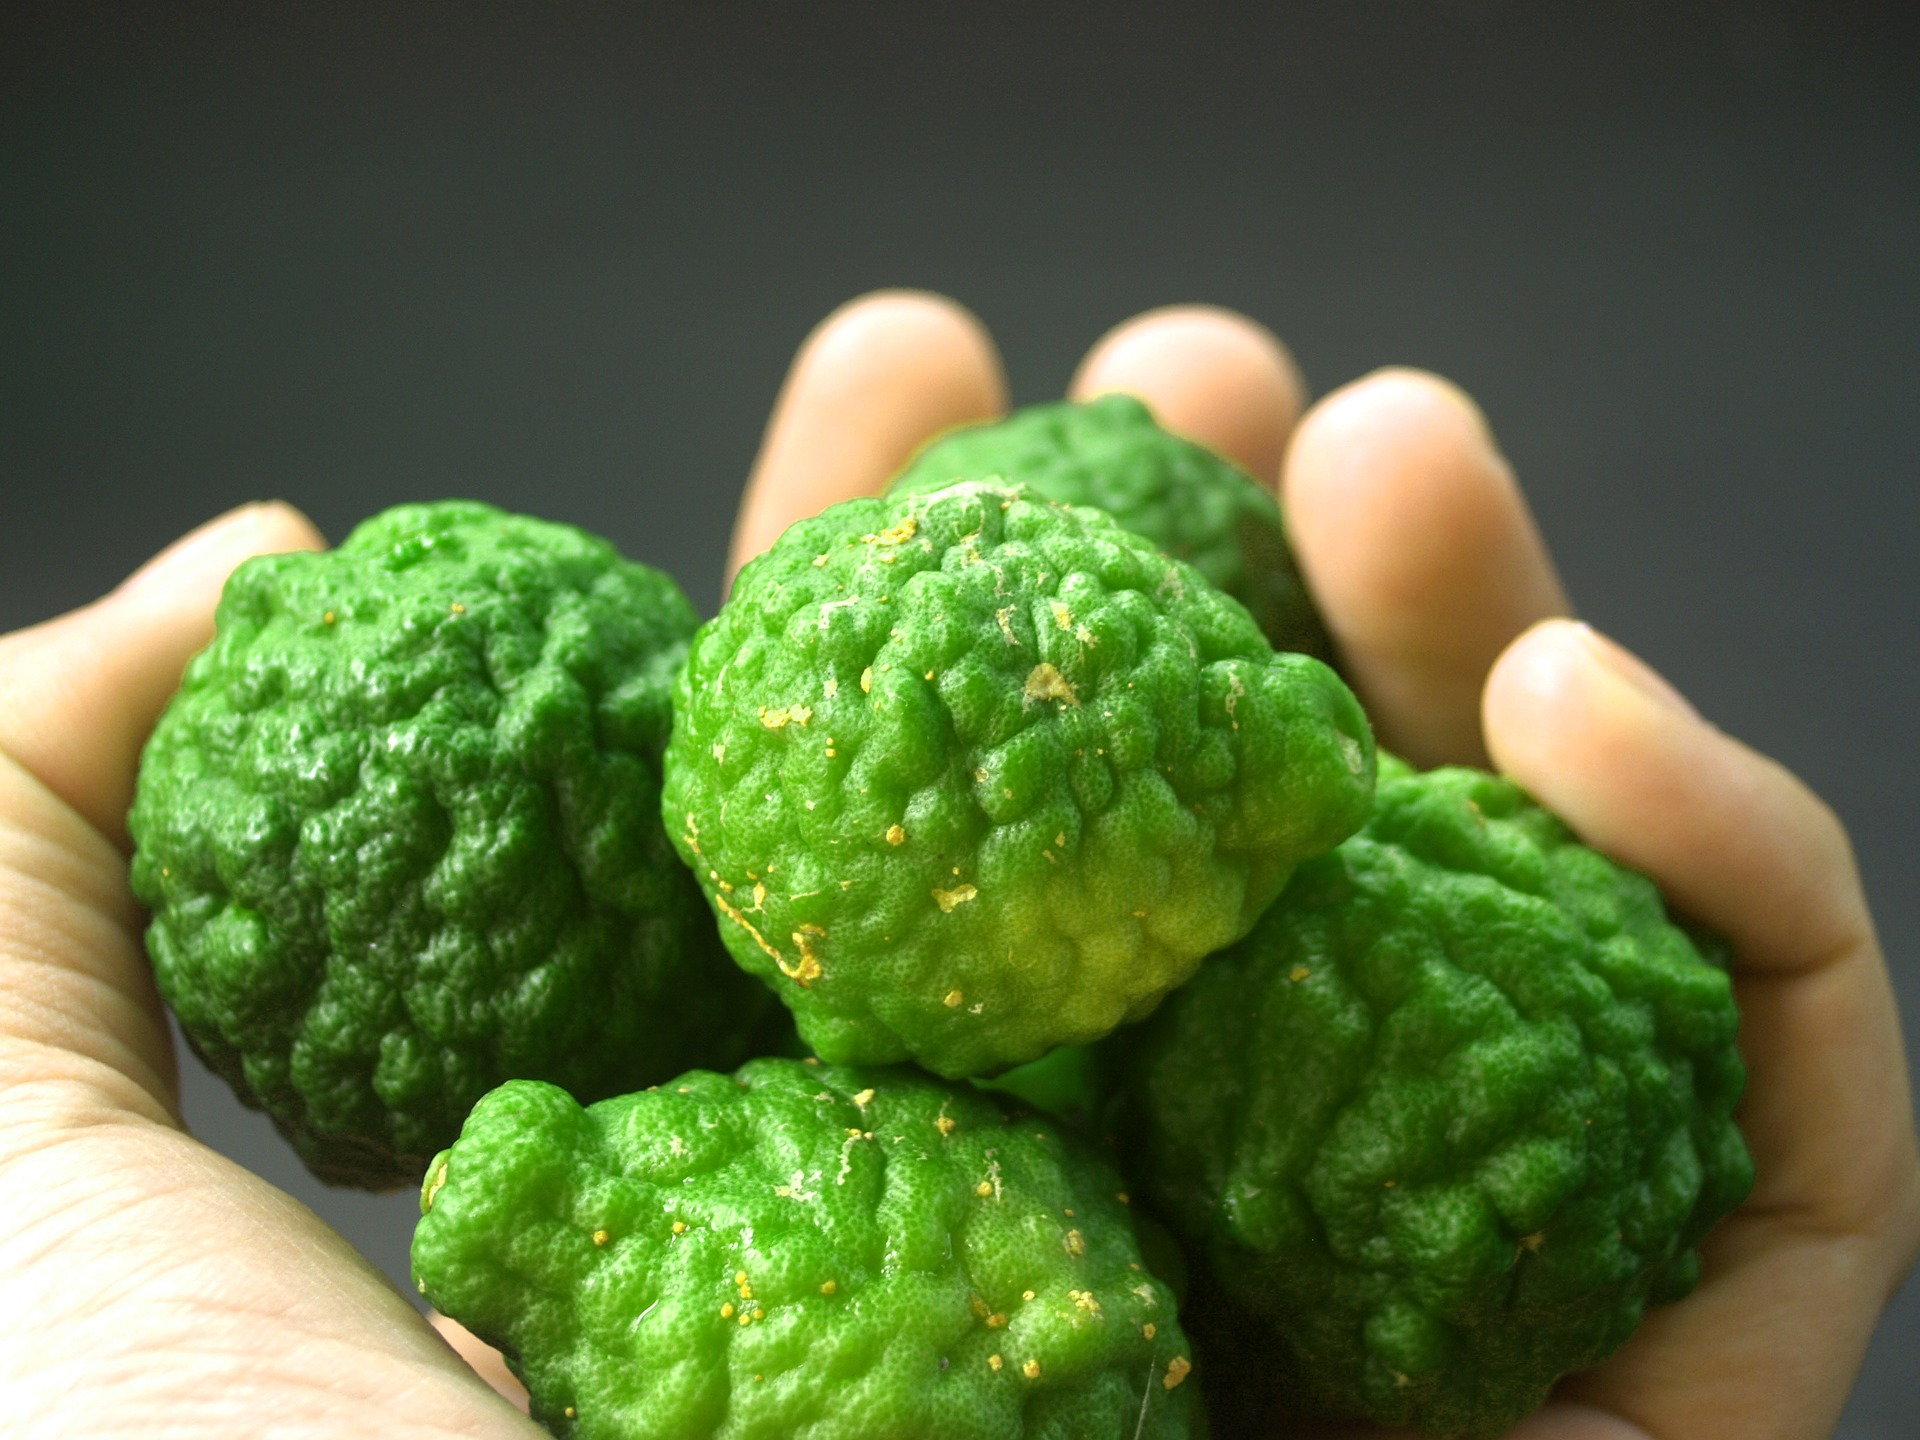 Essential Oils for Acne: bergamot orange